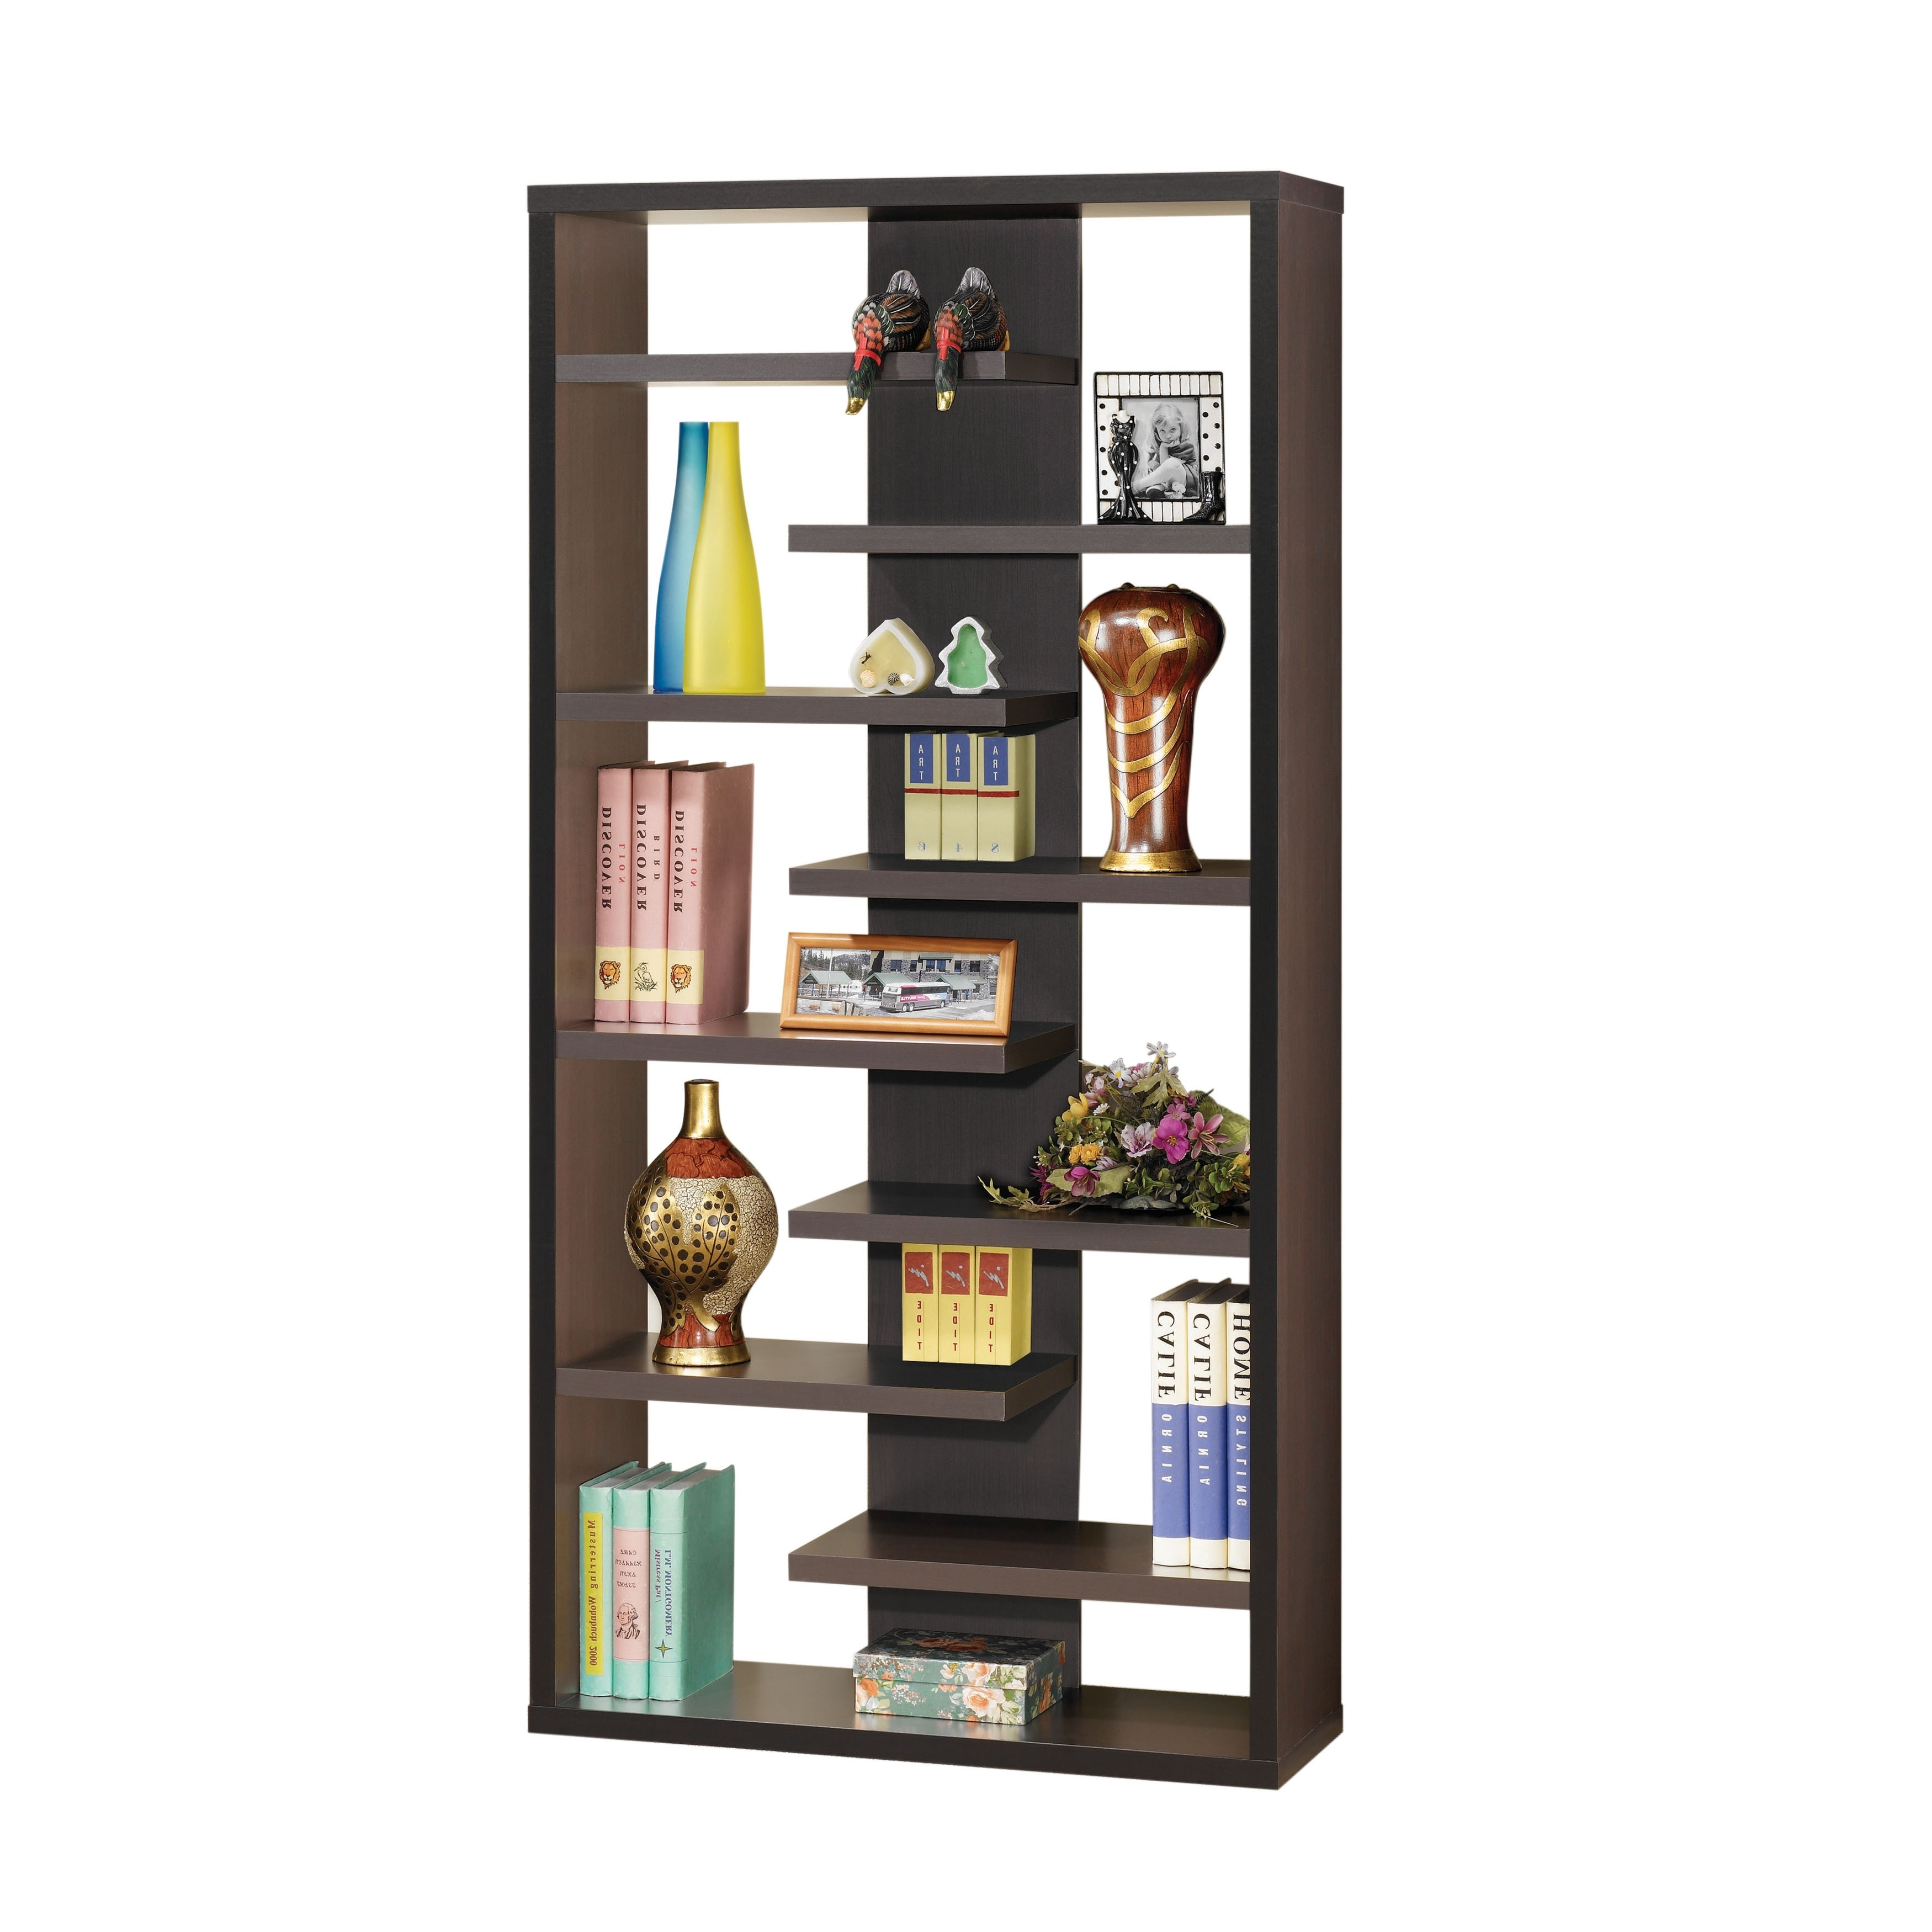 Backless Bookshelves For Well Known Coaster Company 8 Shelf Cappuccino Bookshelf – Free Shipping Today (View 12 of 15)